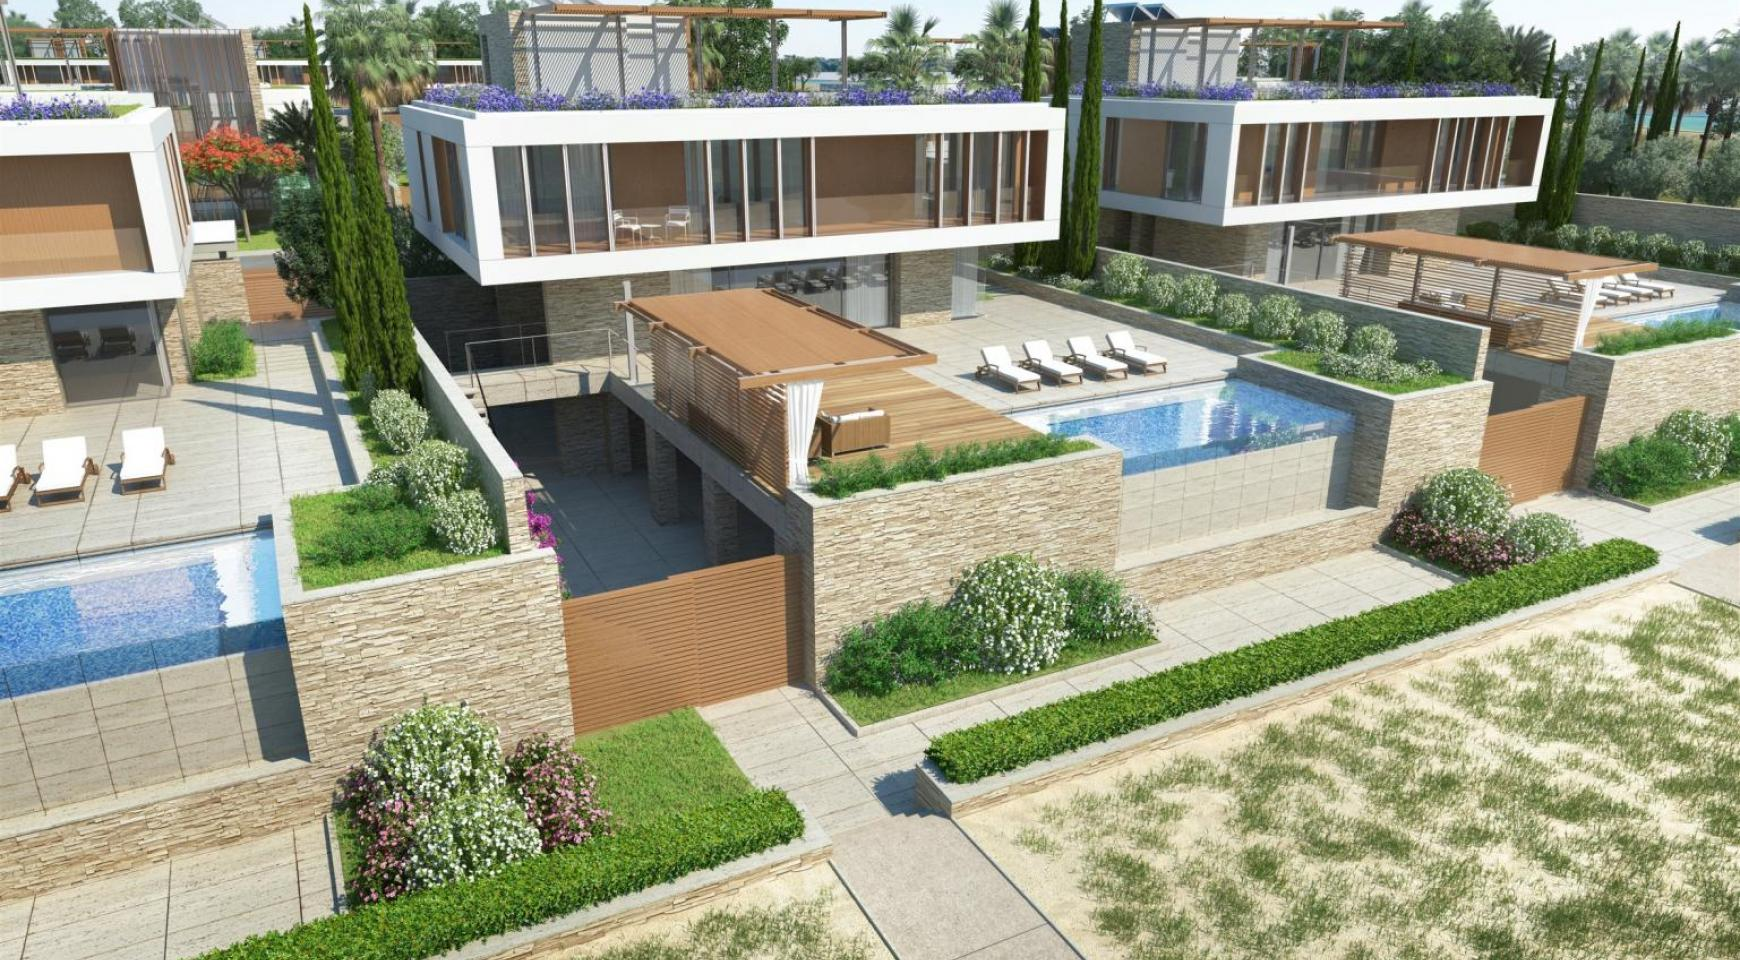 Stunning 3 Bedroom Villa in an Exclusive Project by the Sea - 5